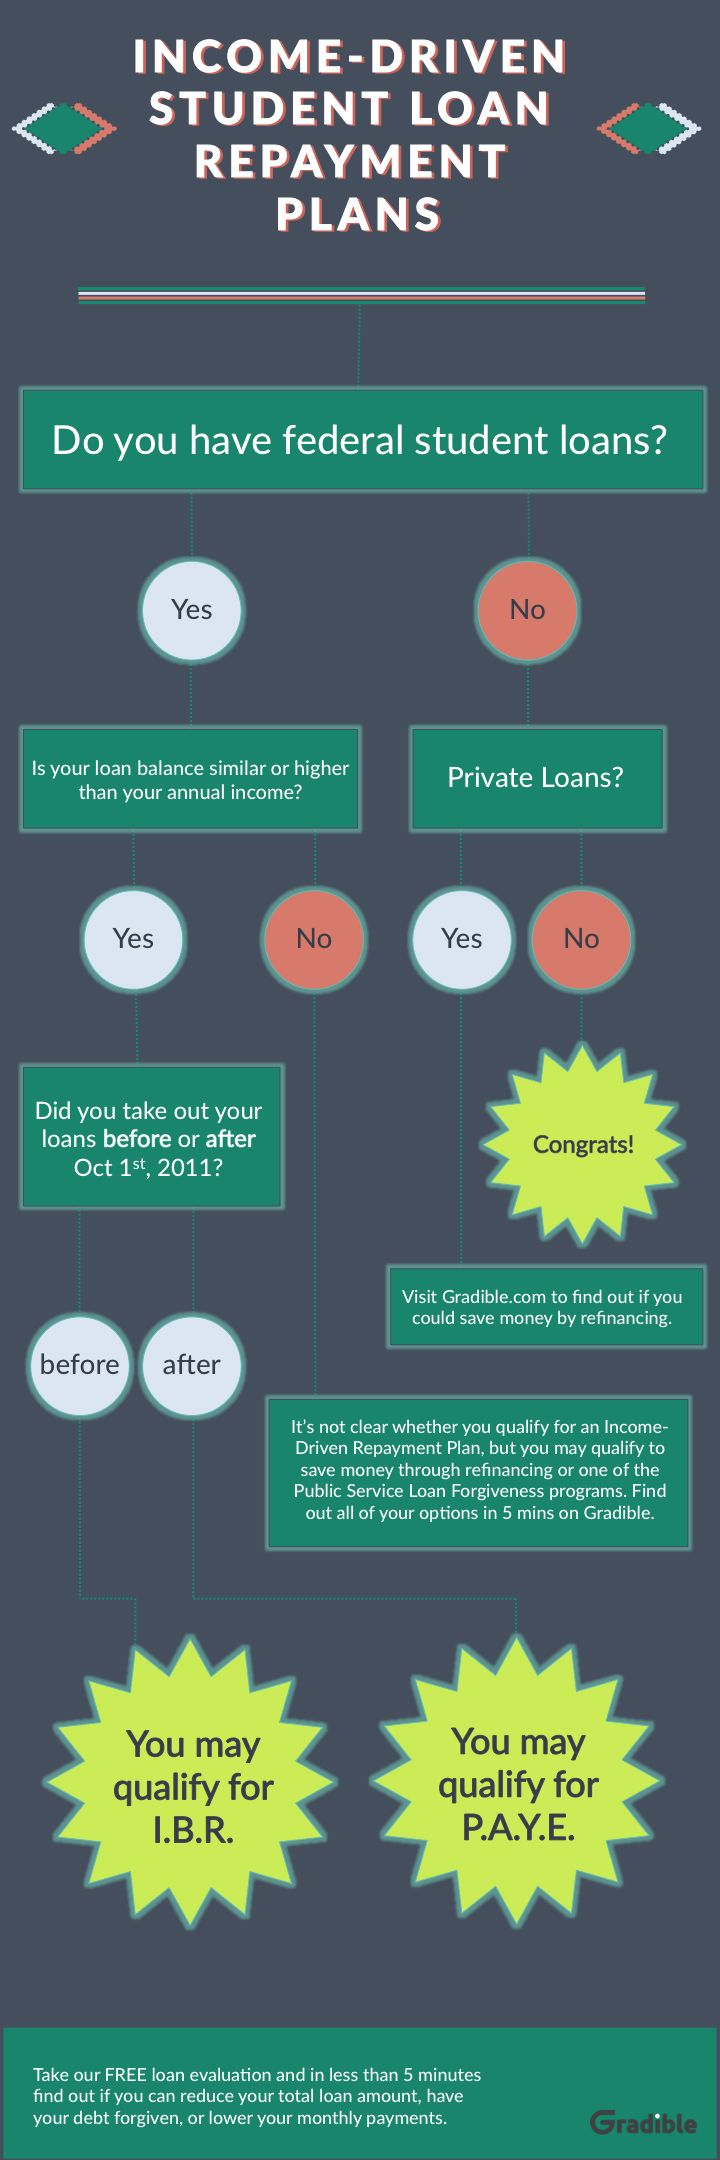 Watch 5 Options To Repay Your Student Loans video